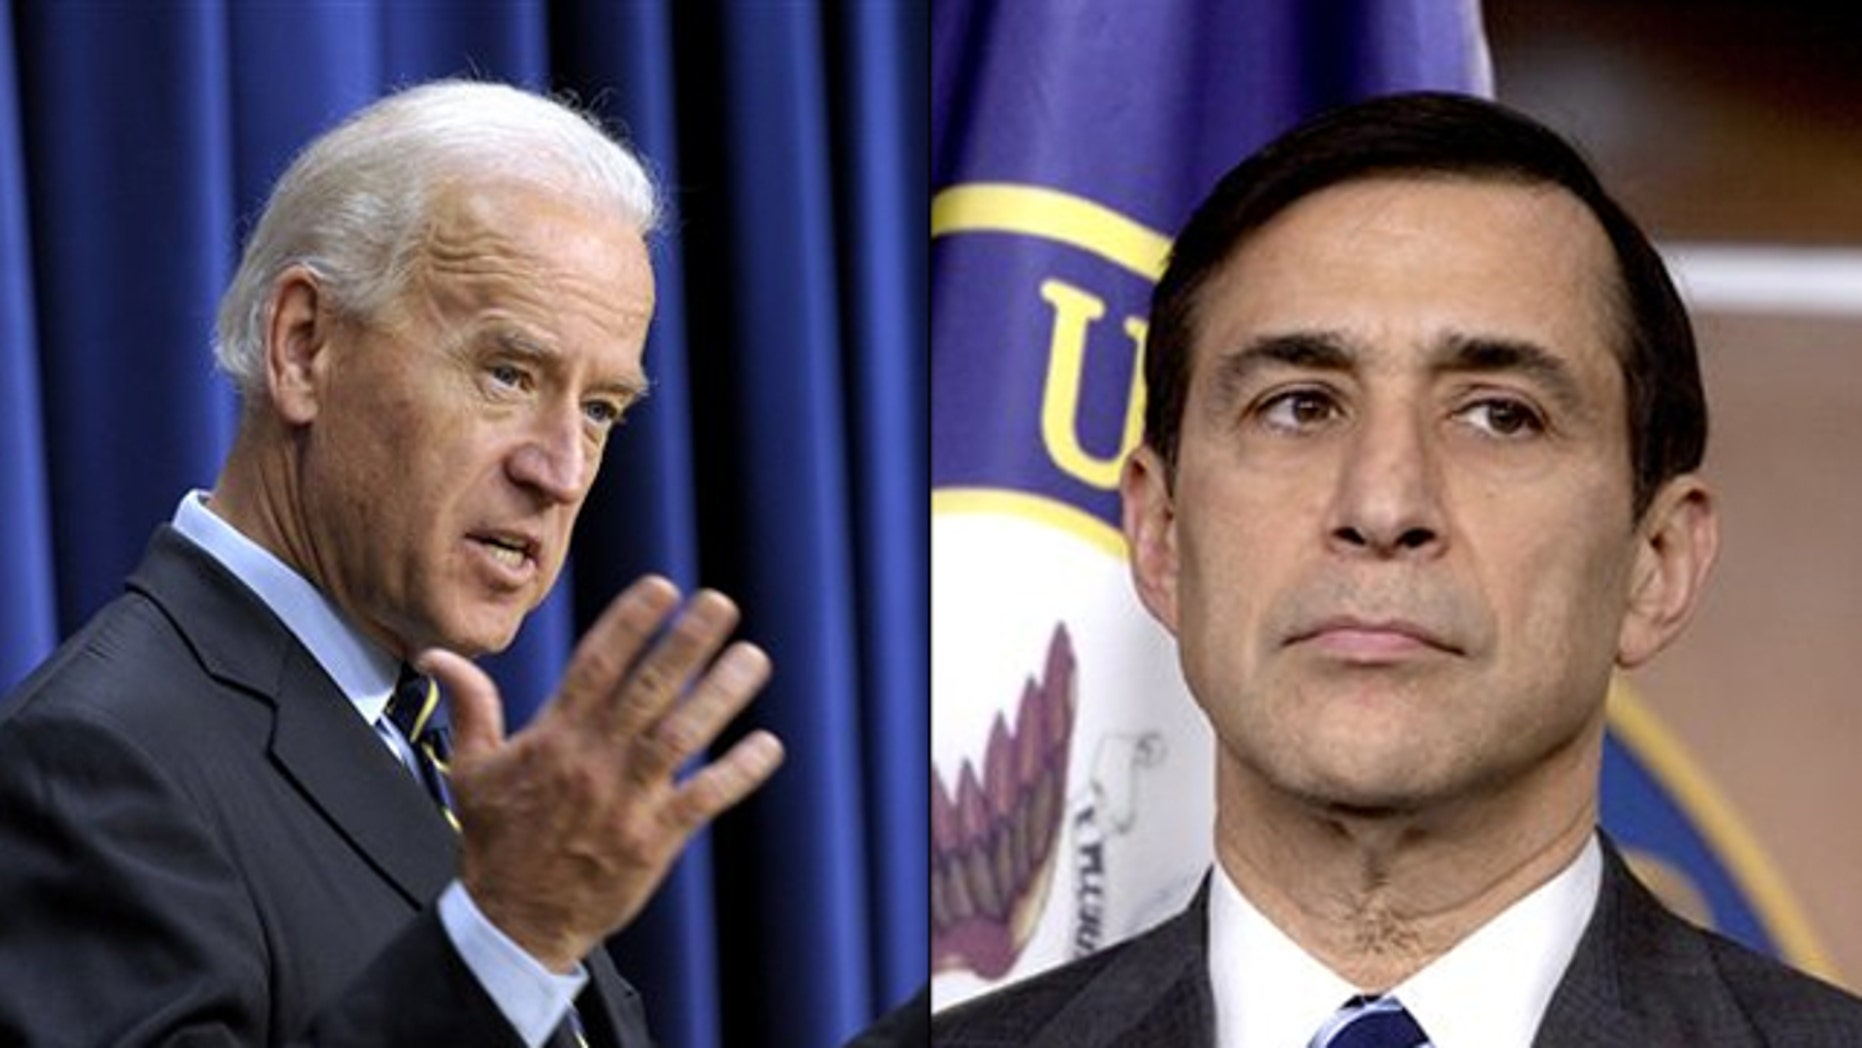 Shown here are Vice President Biden, left, and Rep. Darrell Issa. (AP Photos)